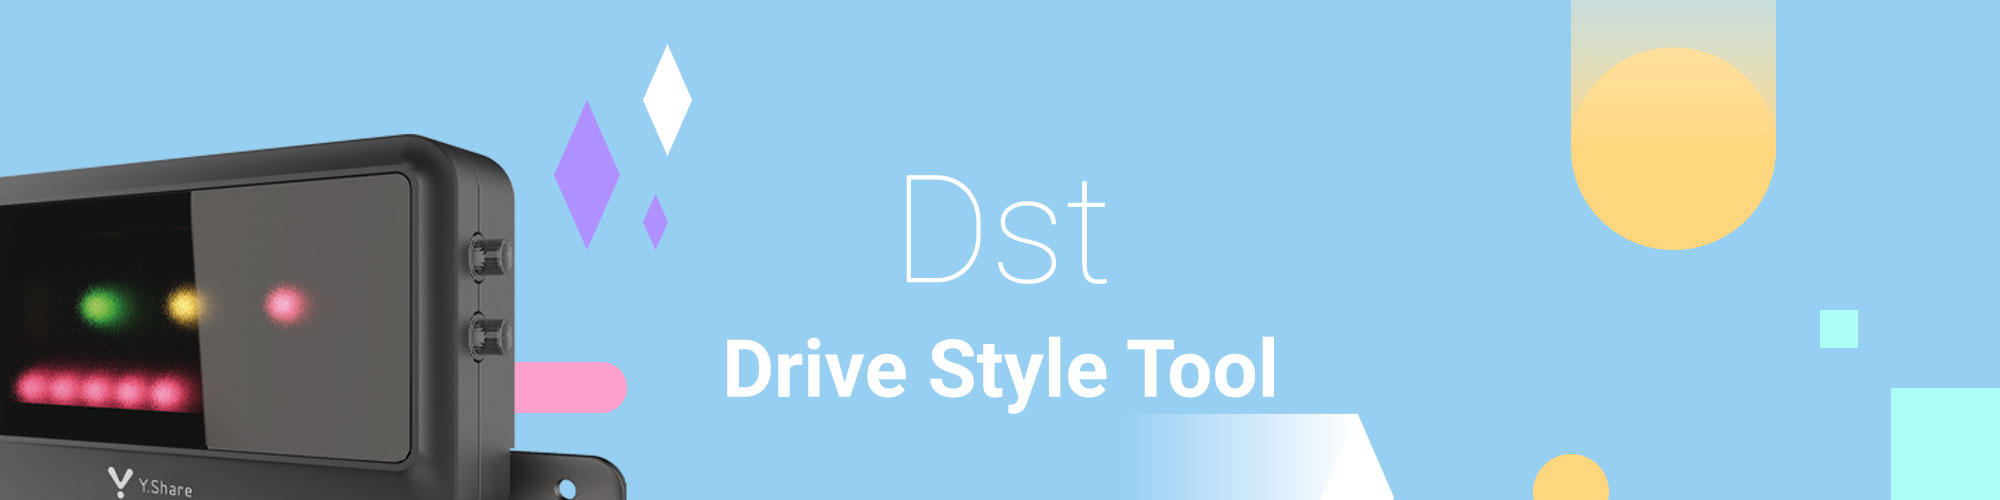 dst drive style tool